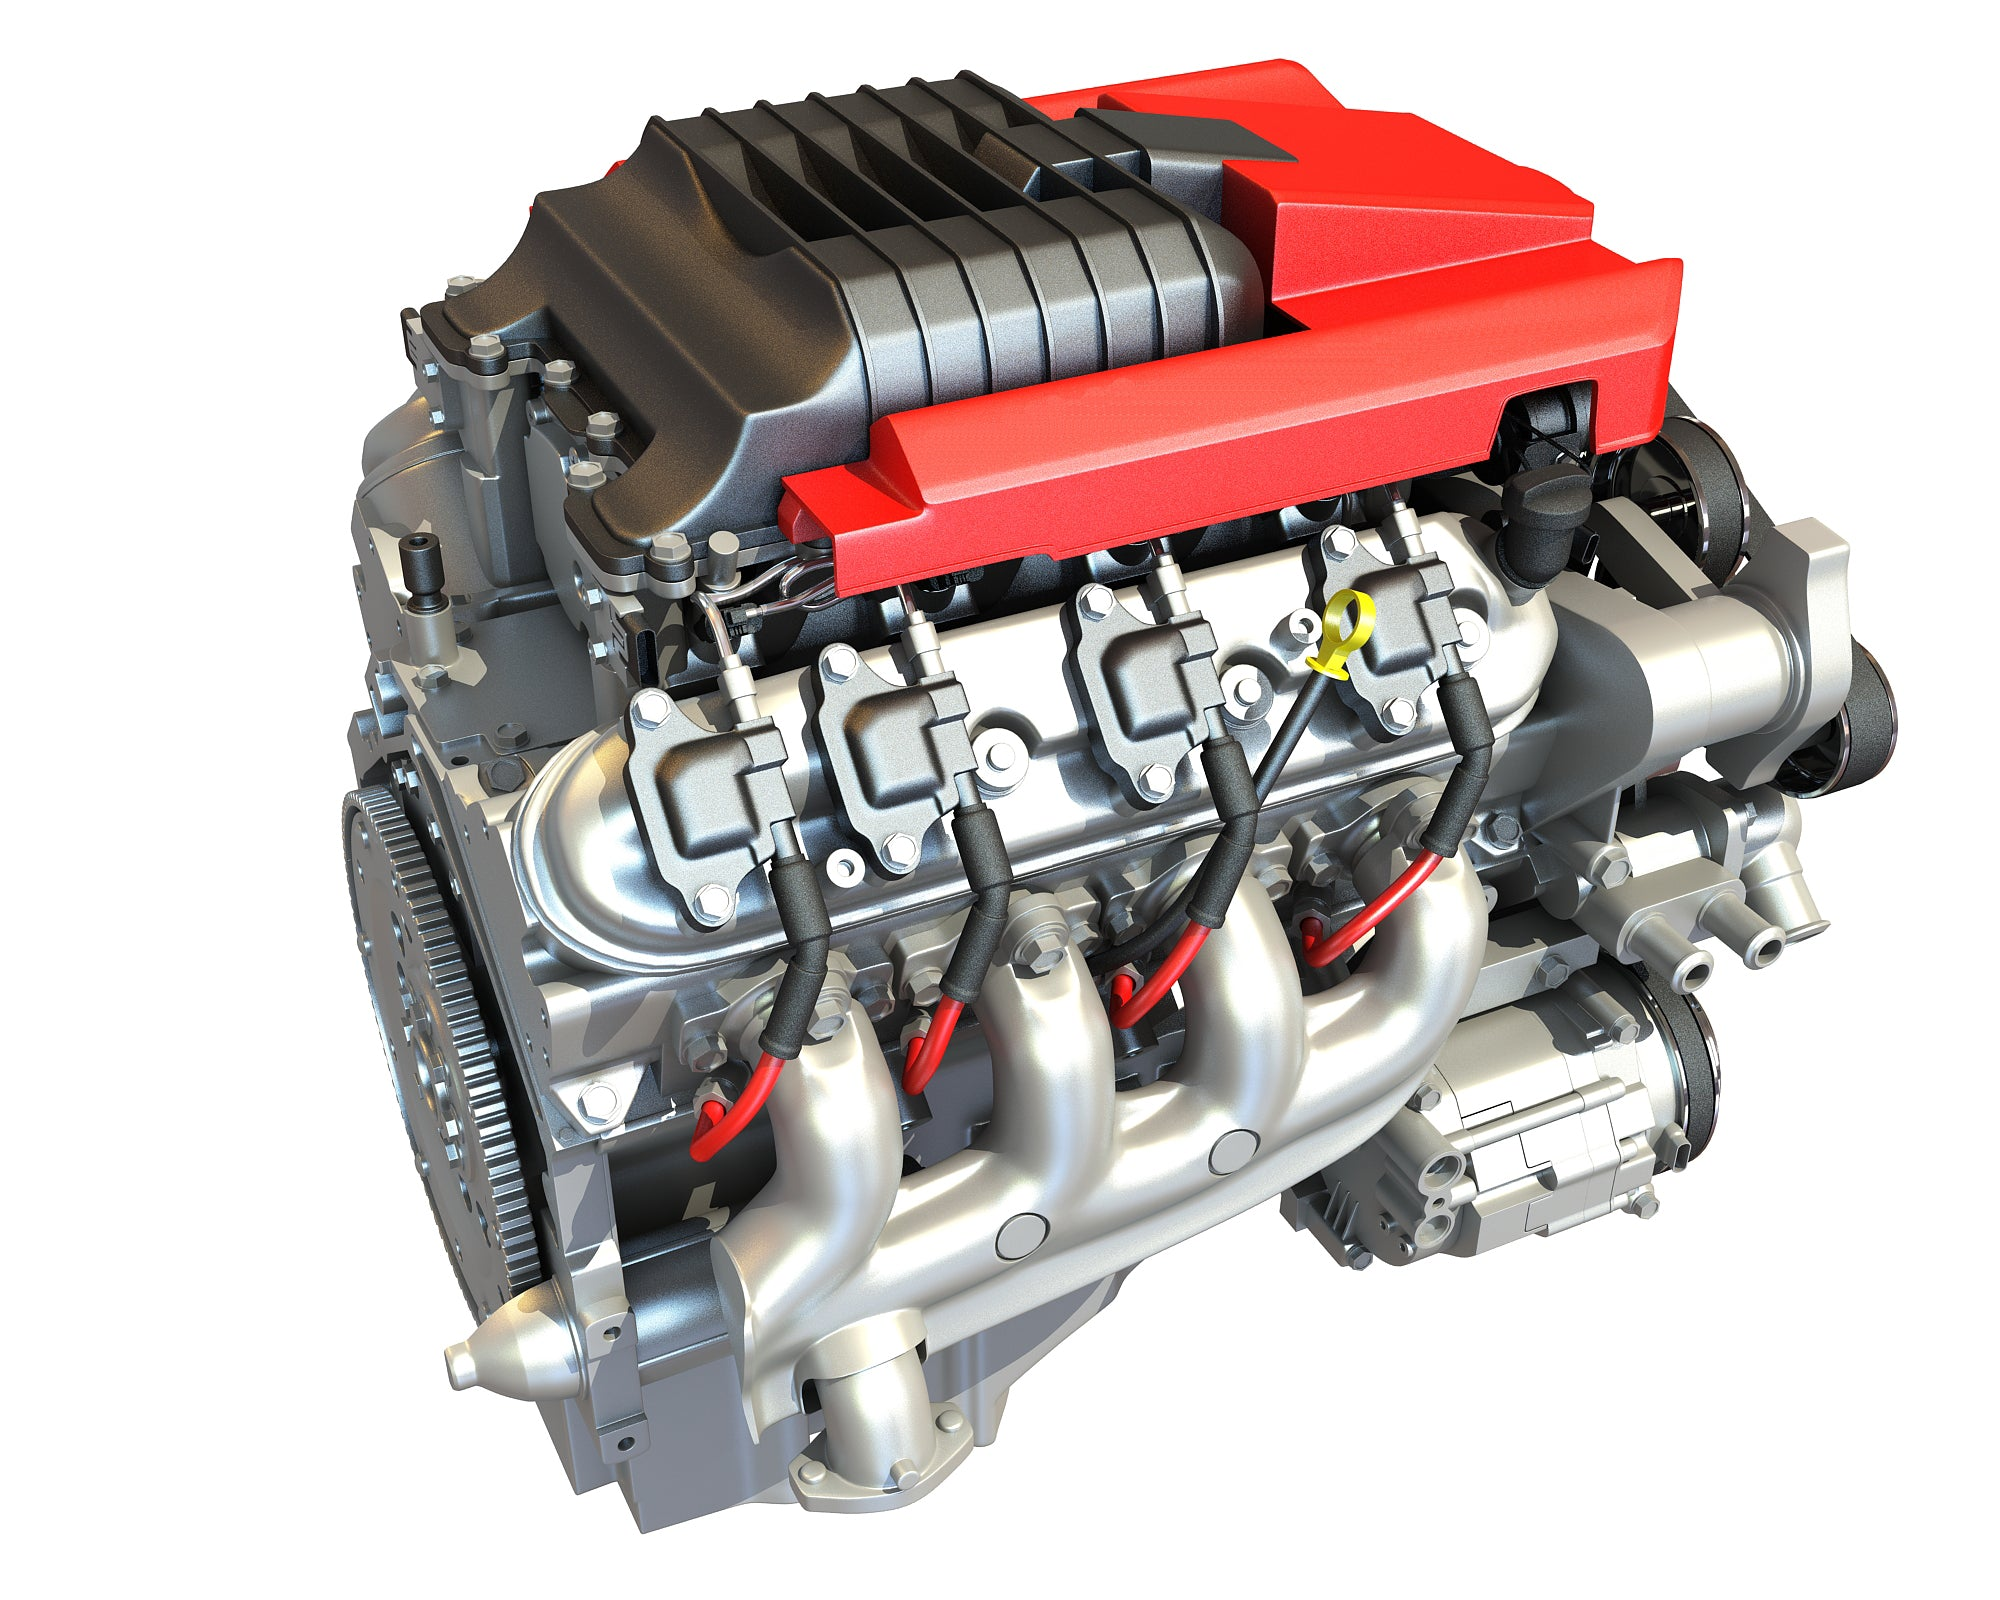 3D Models V8 Supercharged Engine